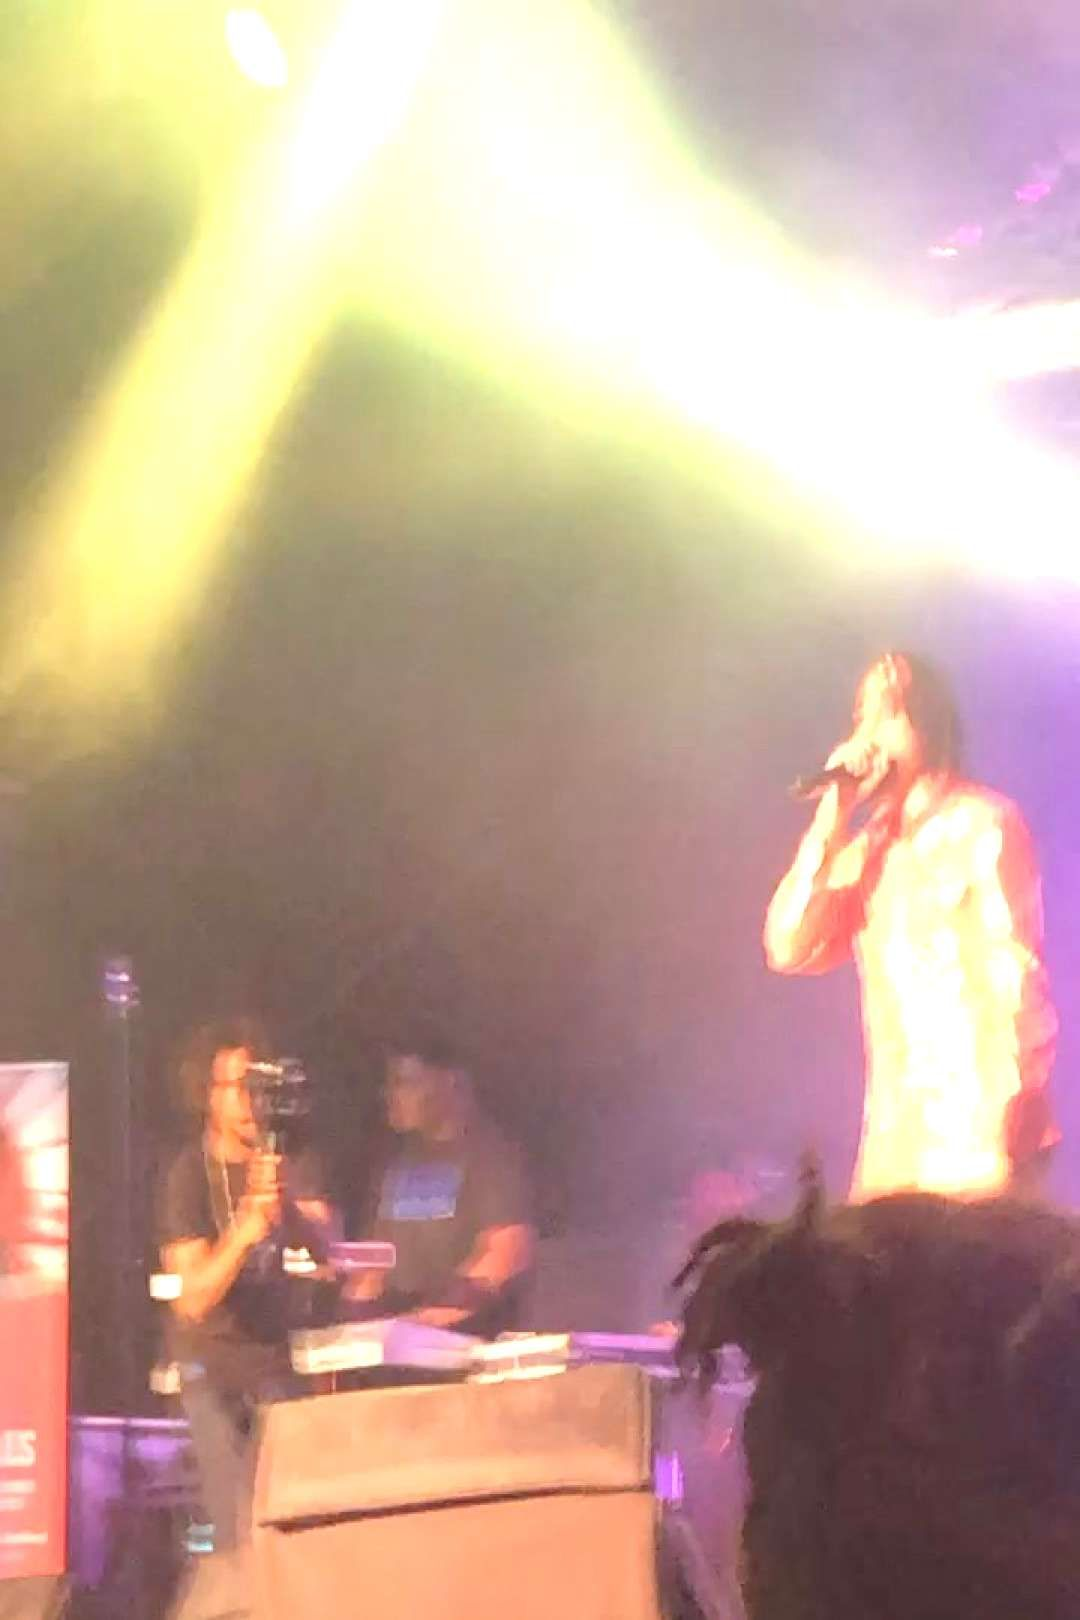 #independentartis #virginislands #concierto #concert #flames #place #had #the #on .. Had the place on flames. #concert #concierto #independentartisYou can find Virgin islands and more on our website... Had the place on flames. #c...